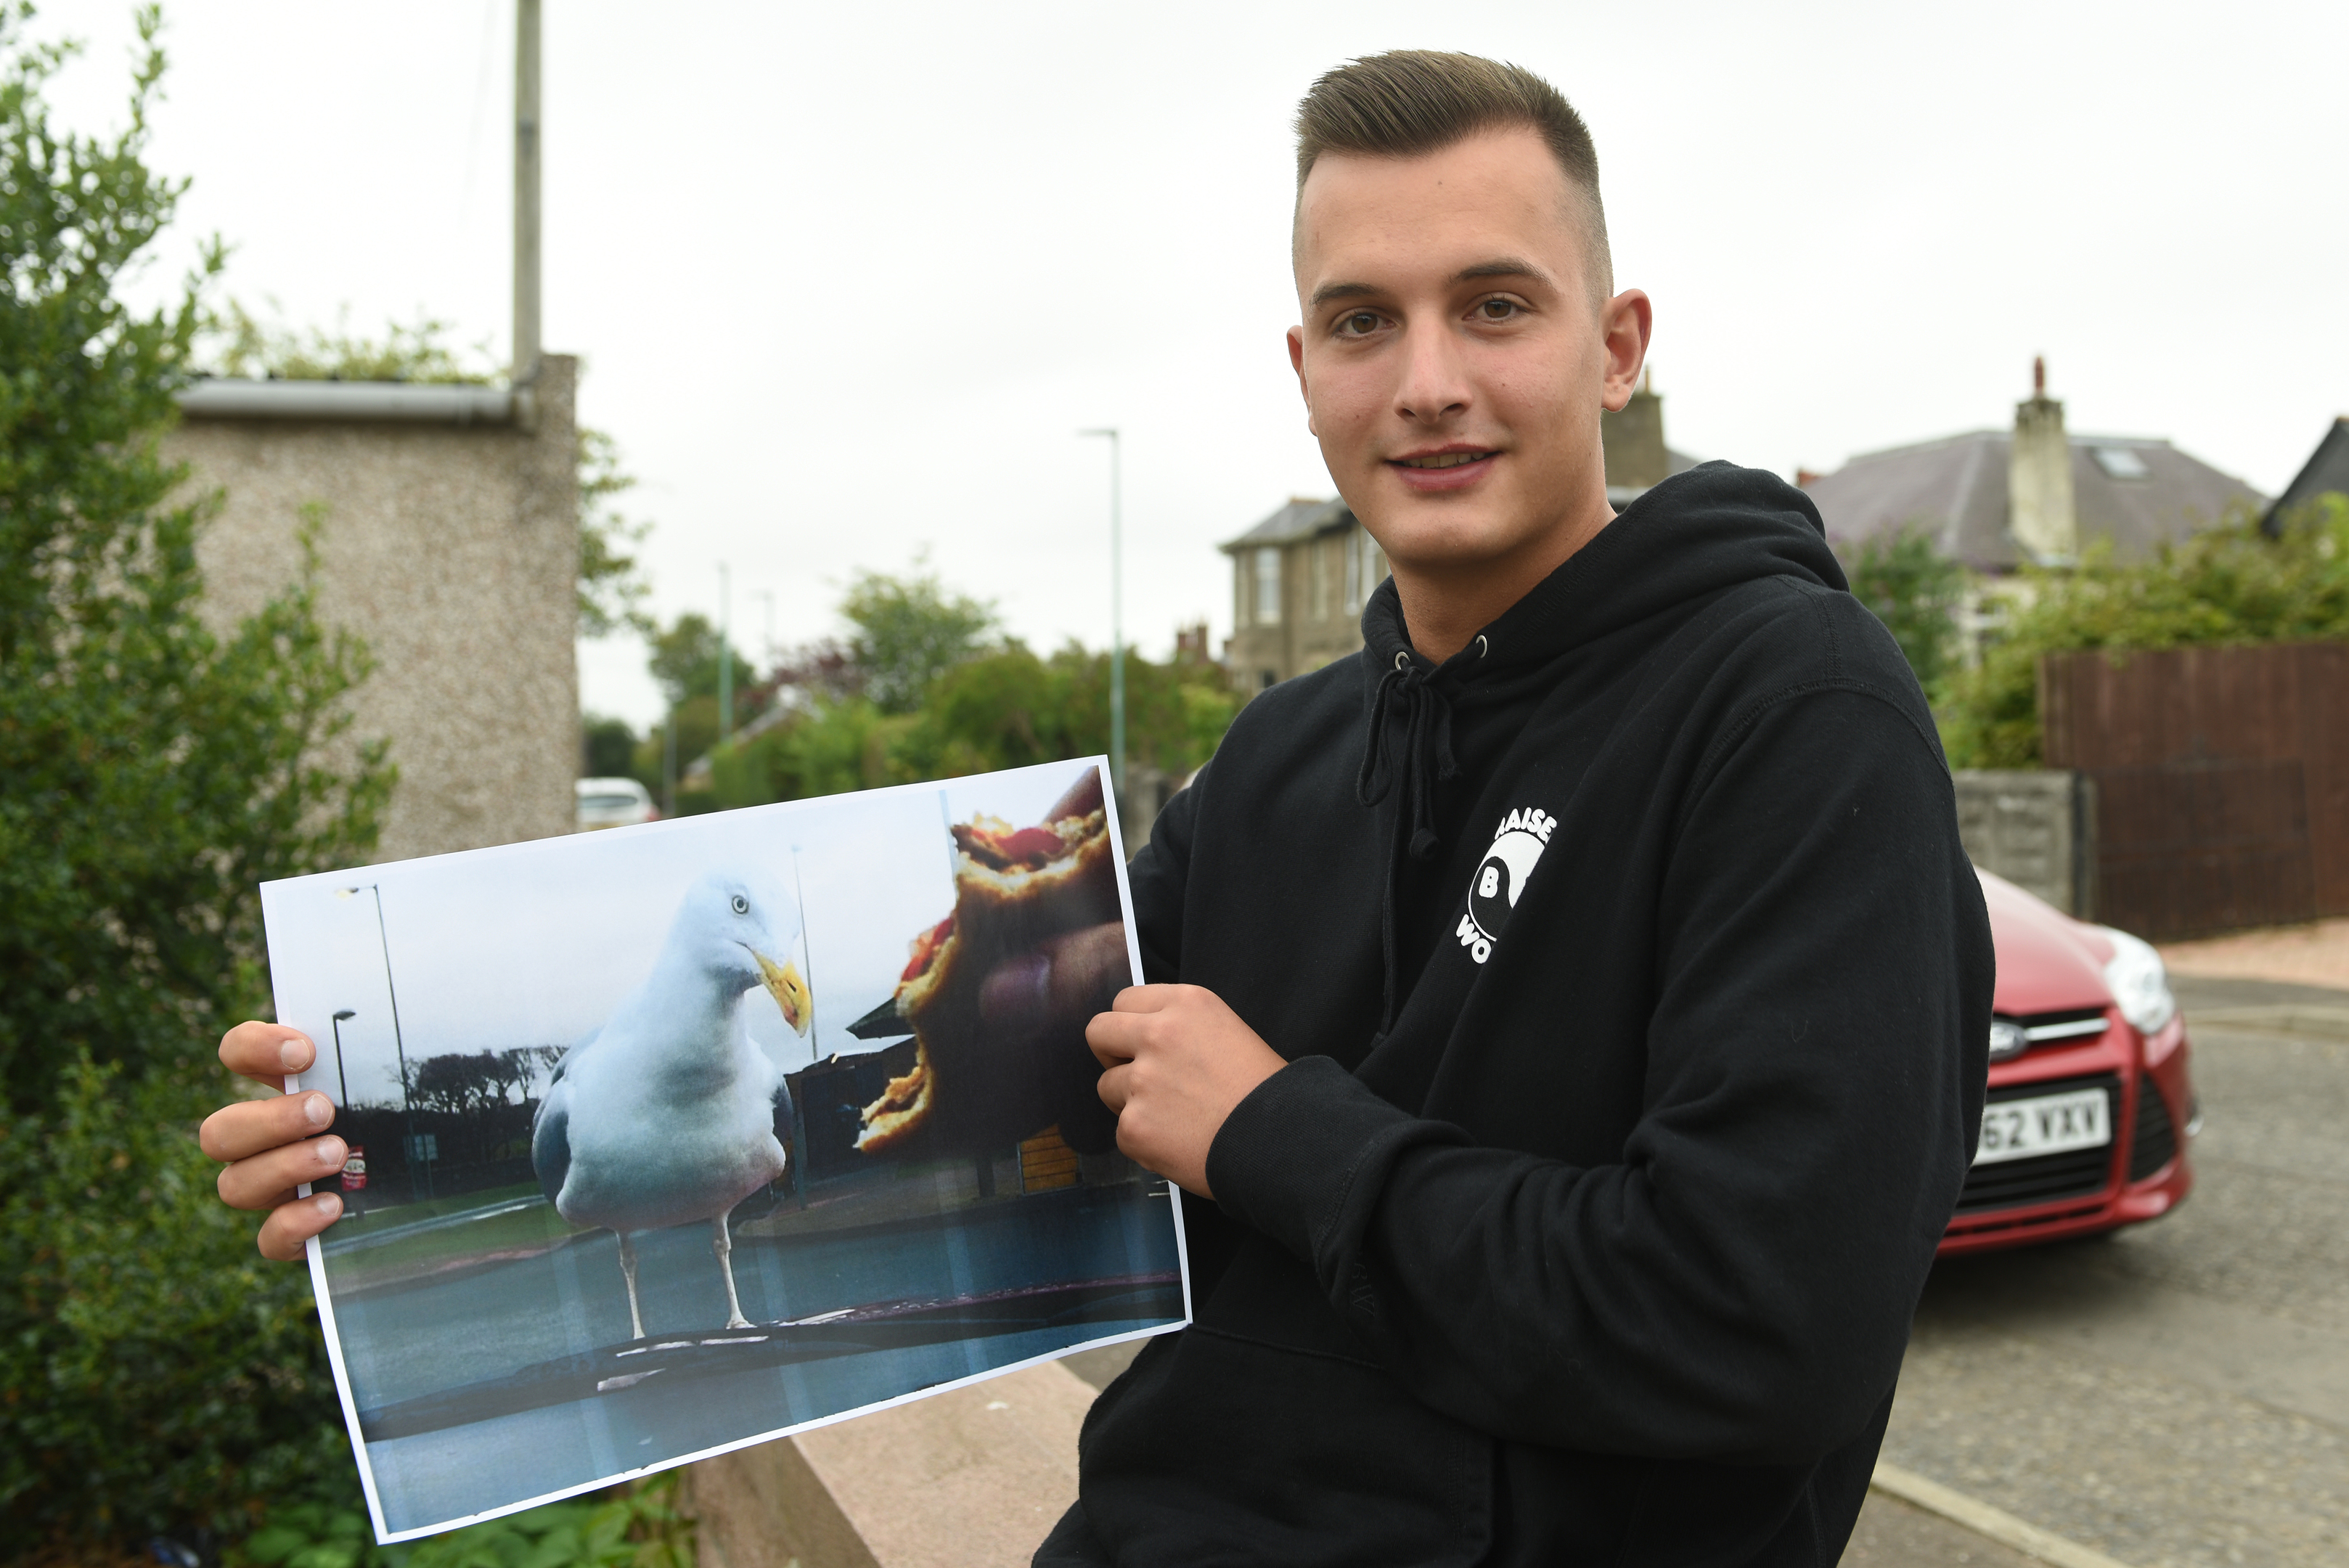 Krystian Mlynarski with a copy of his winning picture.